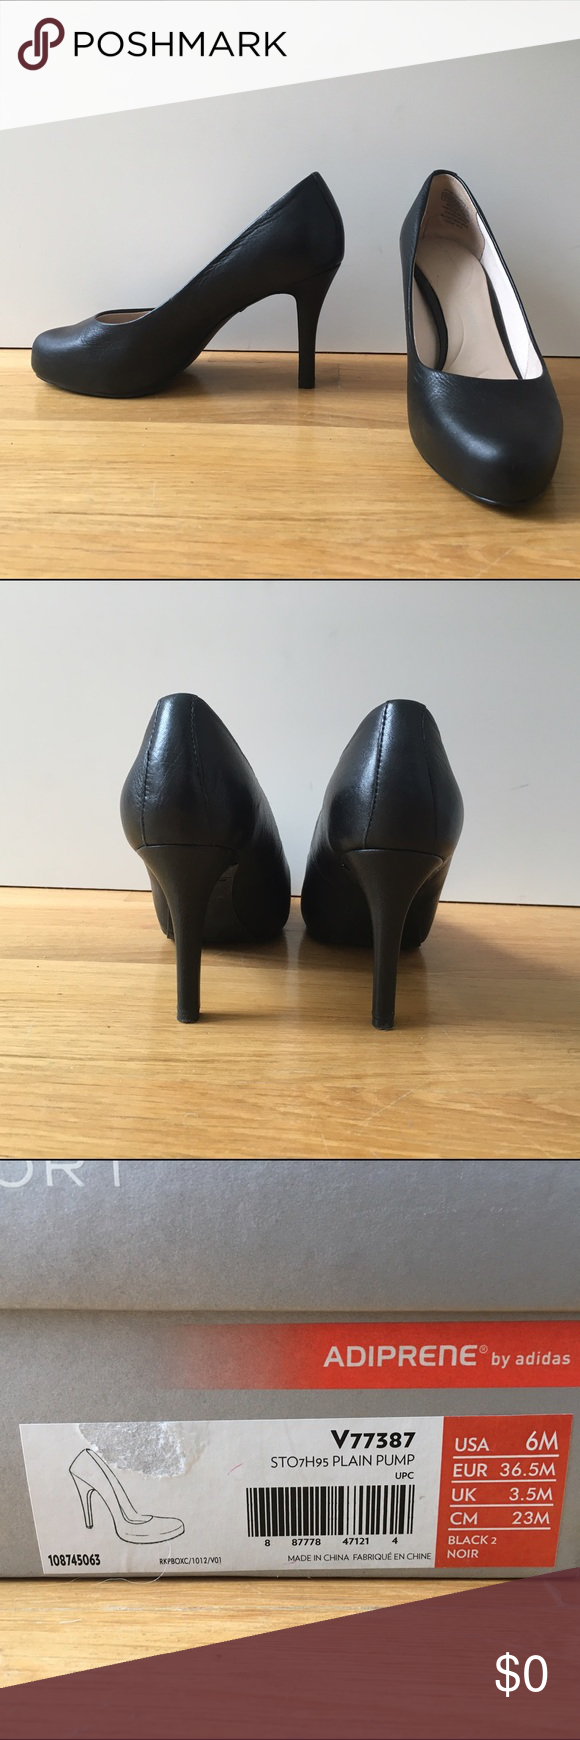 additional photos - Rockport seven to 7 pumps see previous listing. original box included. Shoes Heels